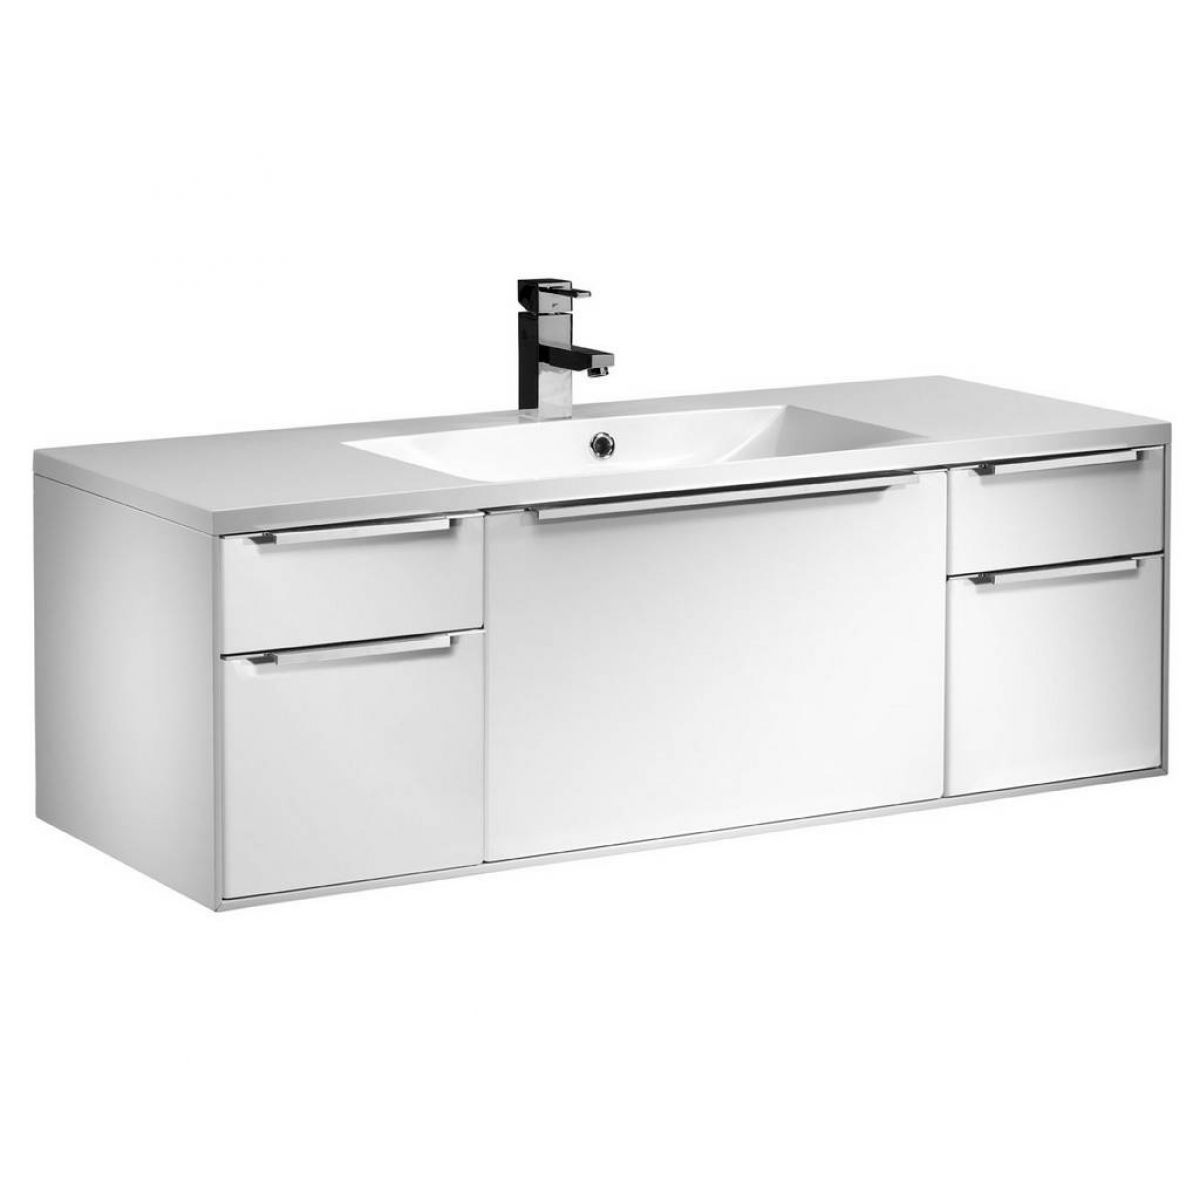 Bathroom Vanity Wall Hung 1200: Roper Rhodes Vista 1200mm Wall Mounted Unit And Iscocast